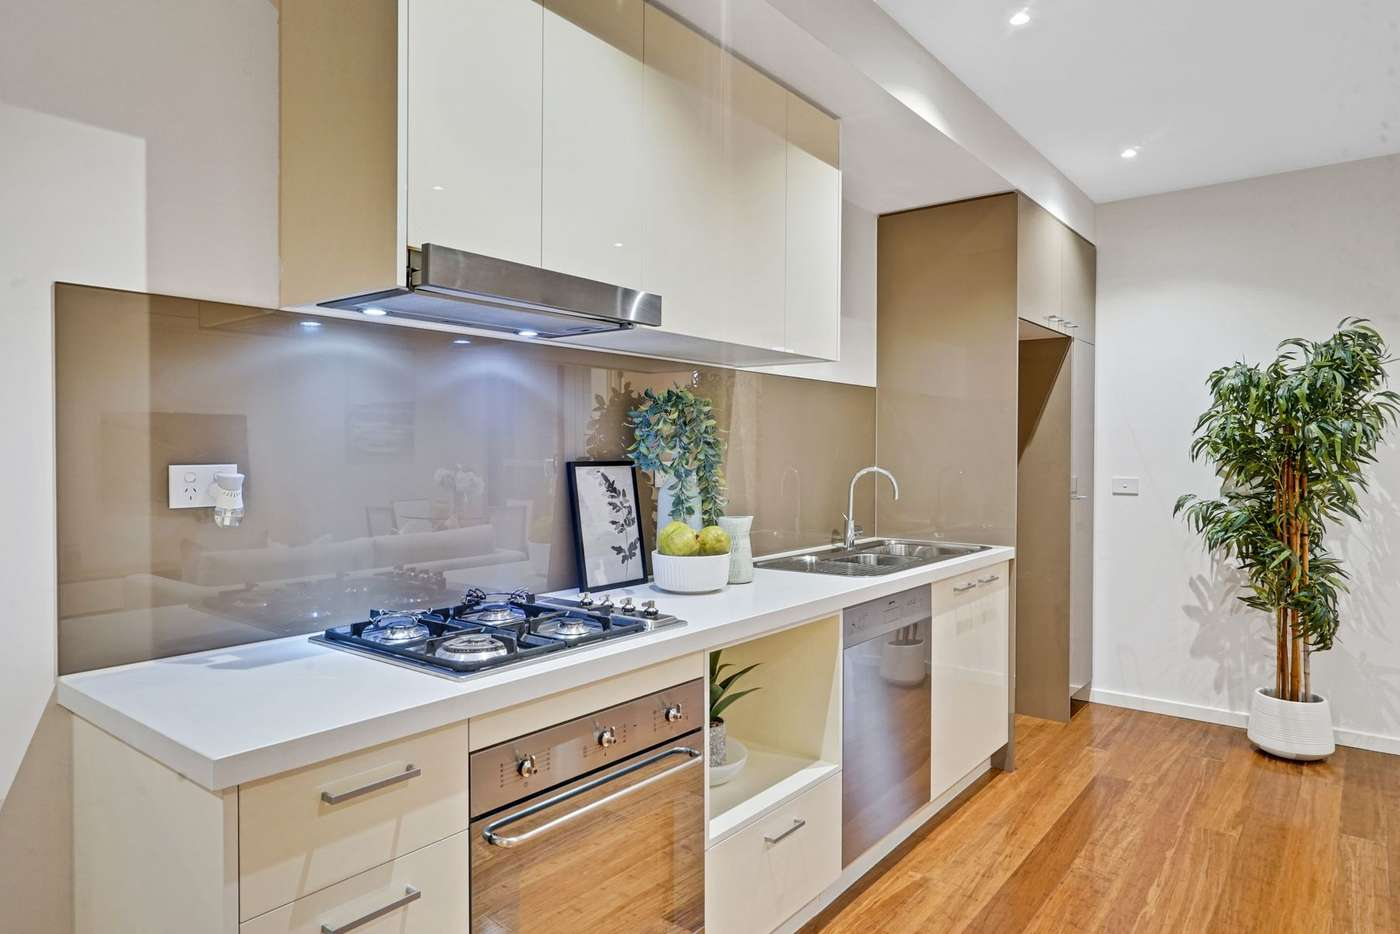 Sixth view of Homely apartment listing, 119/436-442 Huntingdale Road, Mount Waverley VIC 3149